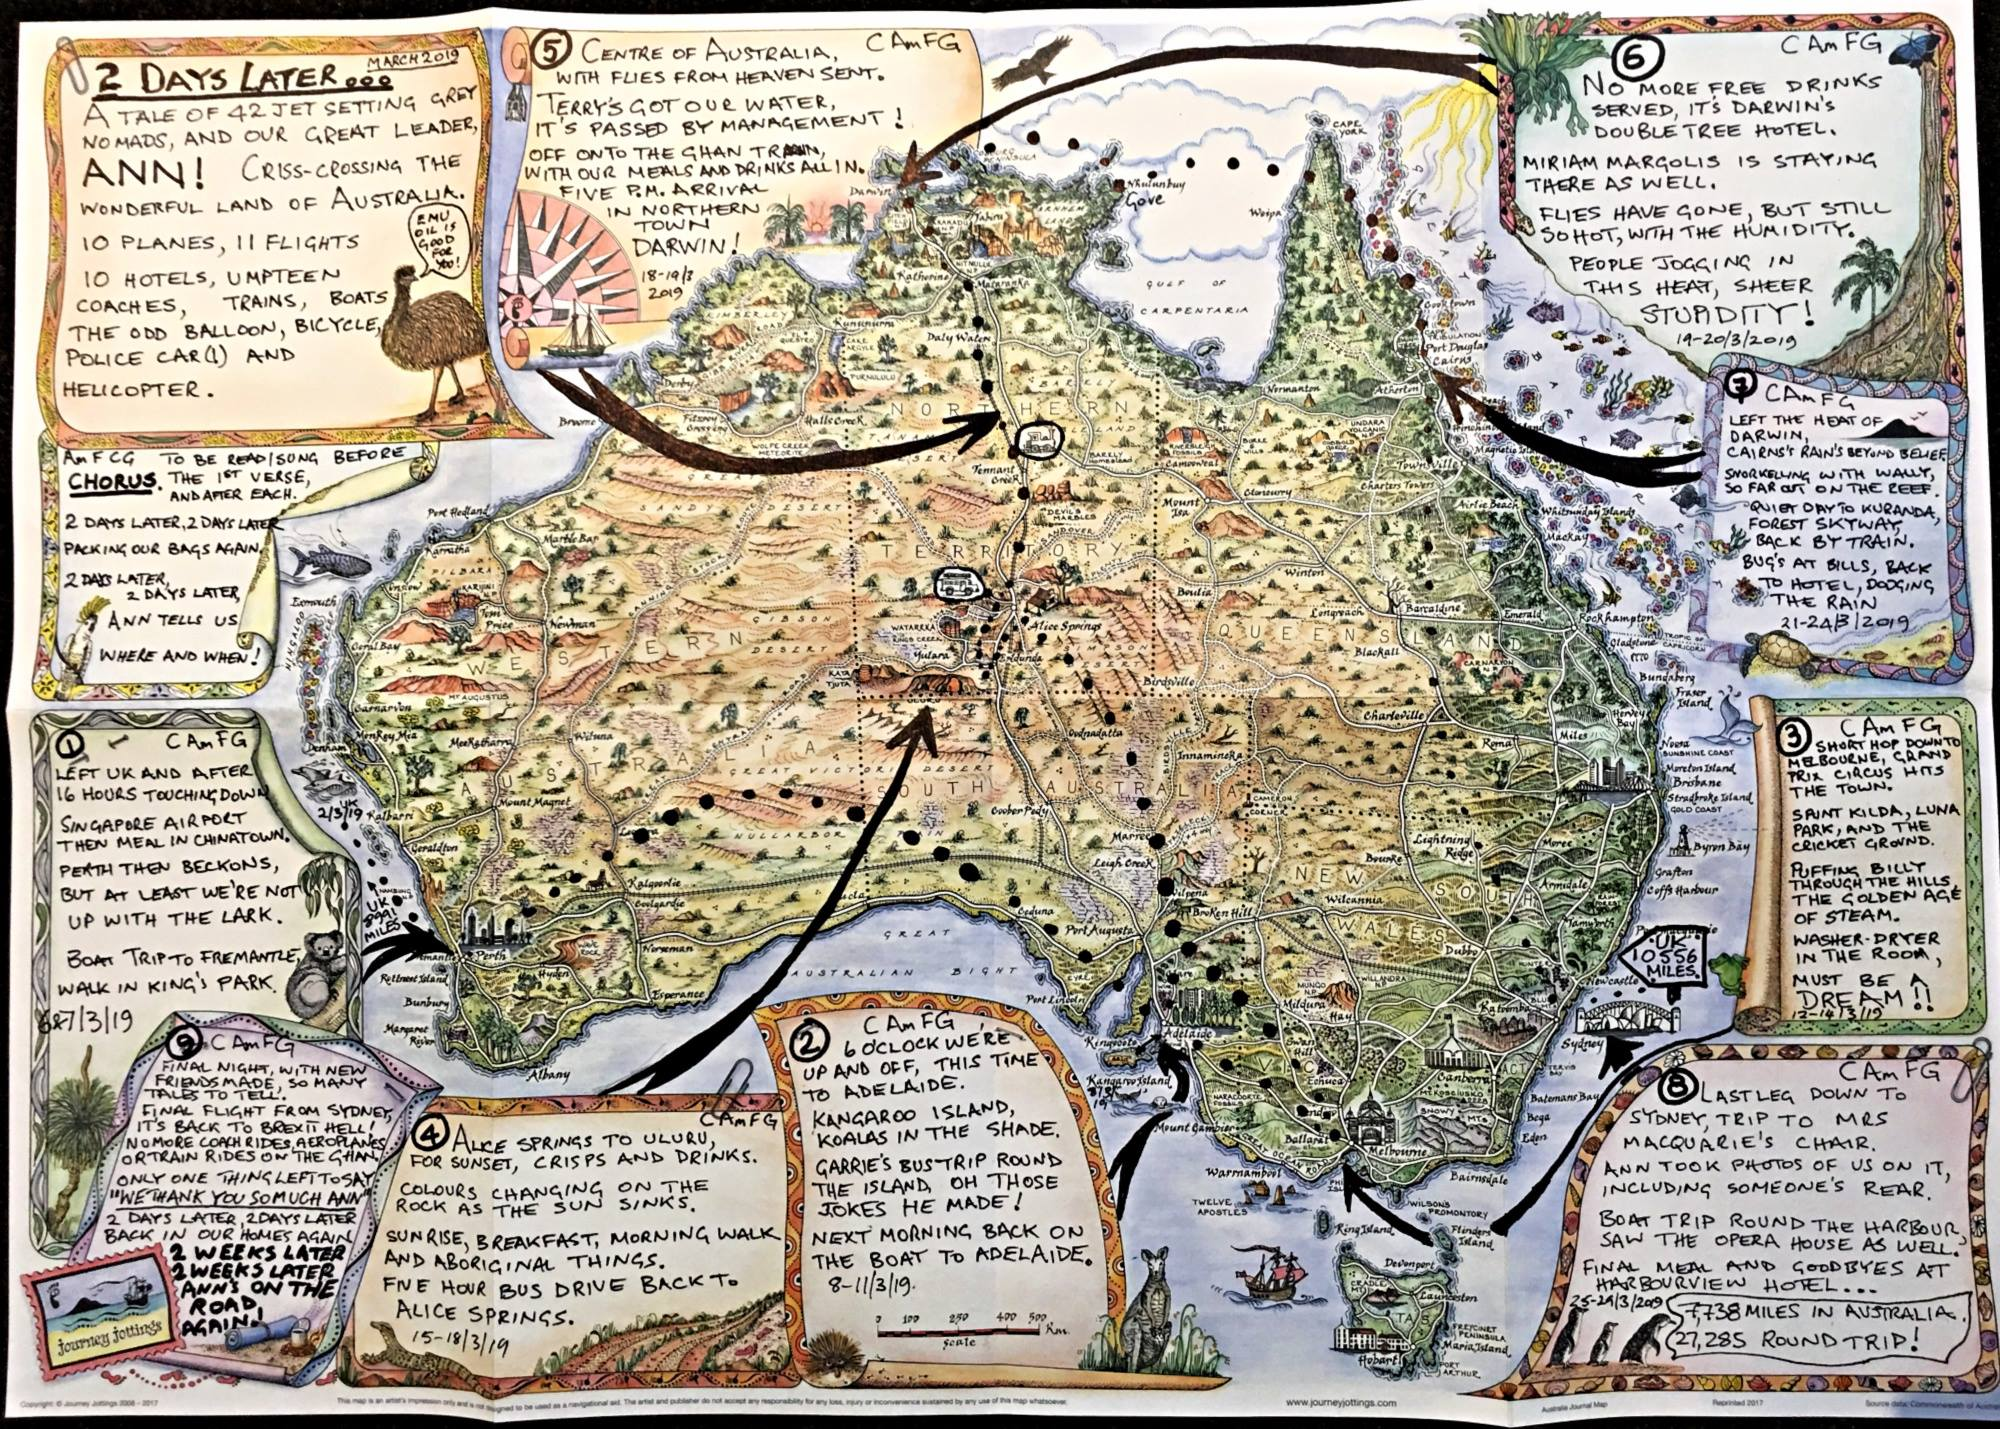 Journal Map by Journey Jottings showing how David recorded his month long trip to Australia arrowing into the central pictorial map highlights of his adventure